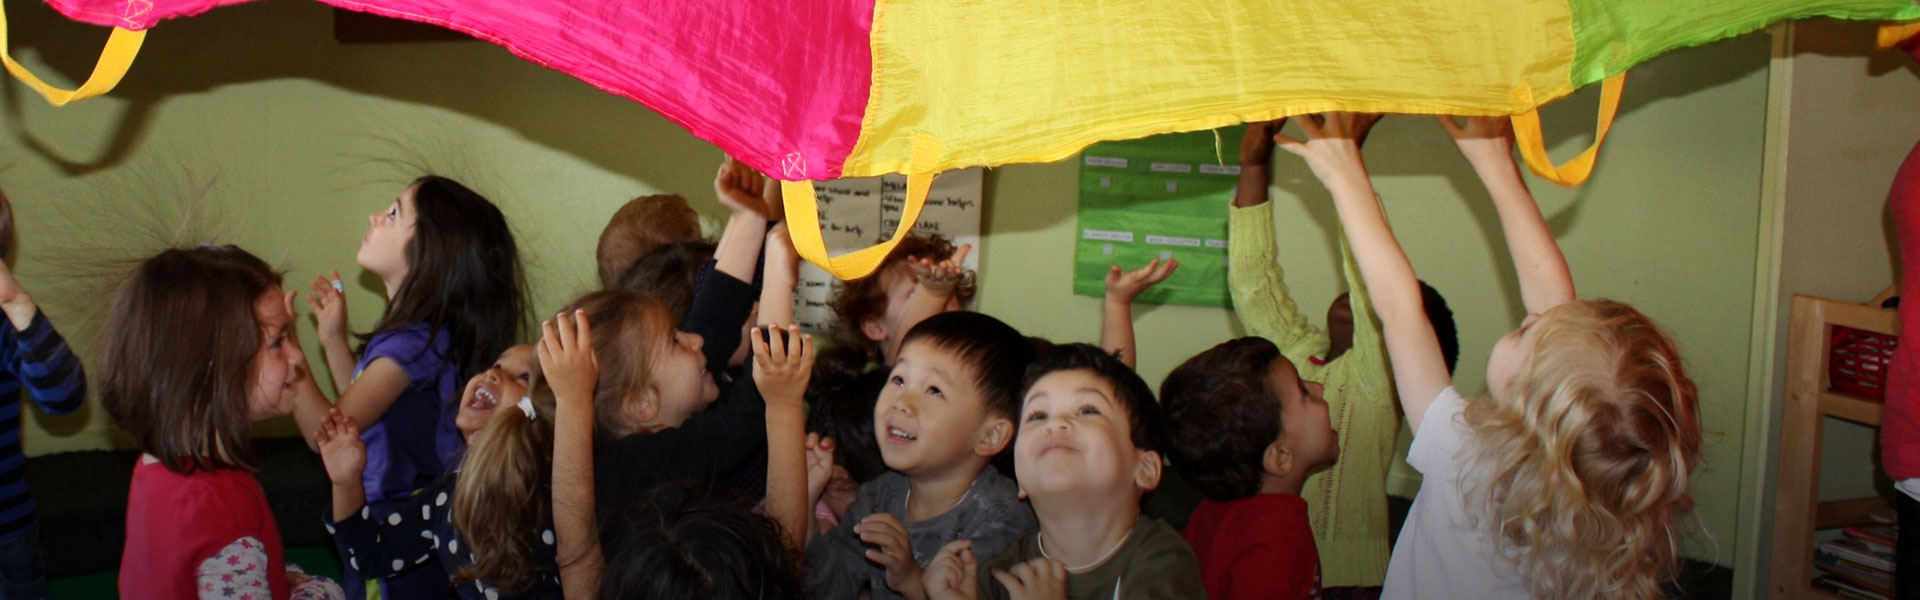 Group of preschool children playing in daycare